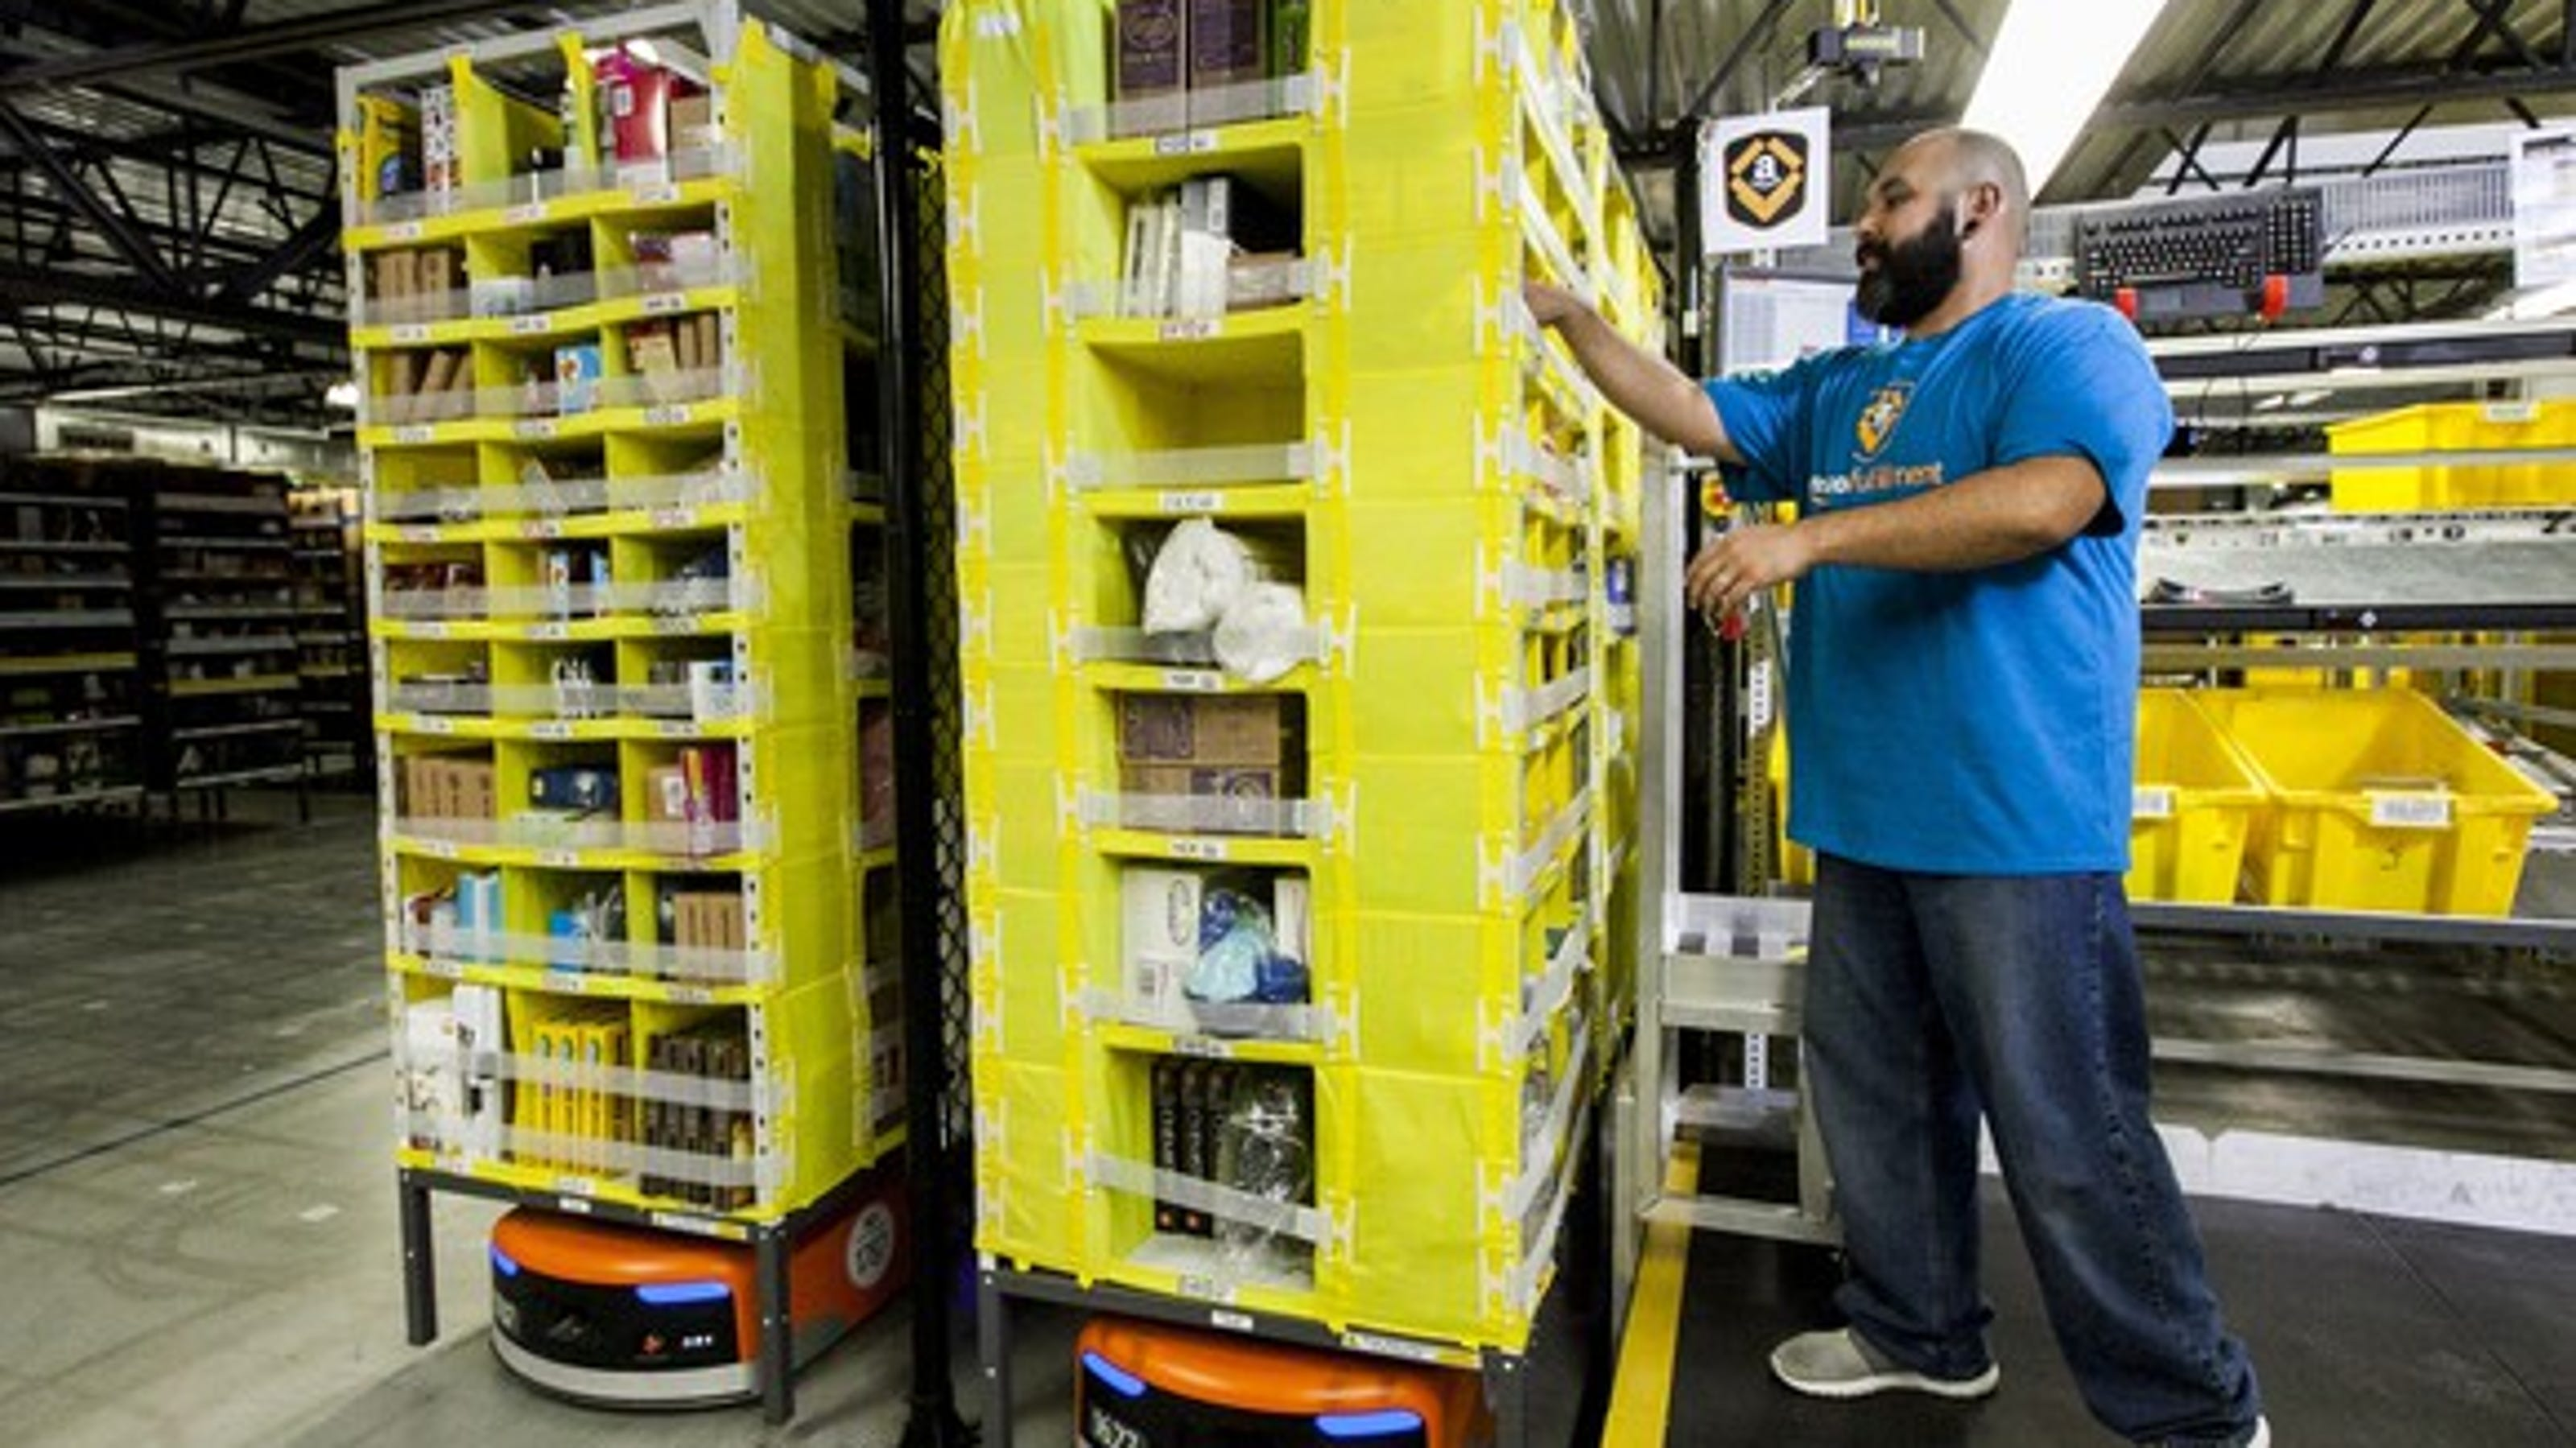 Amazon upping wages to $15/hour, but cuts stock awards, incentive pay thumbnail